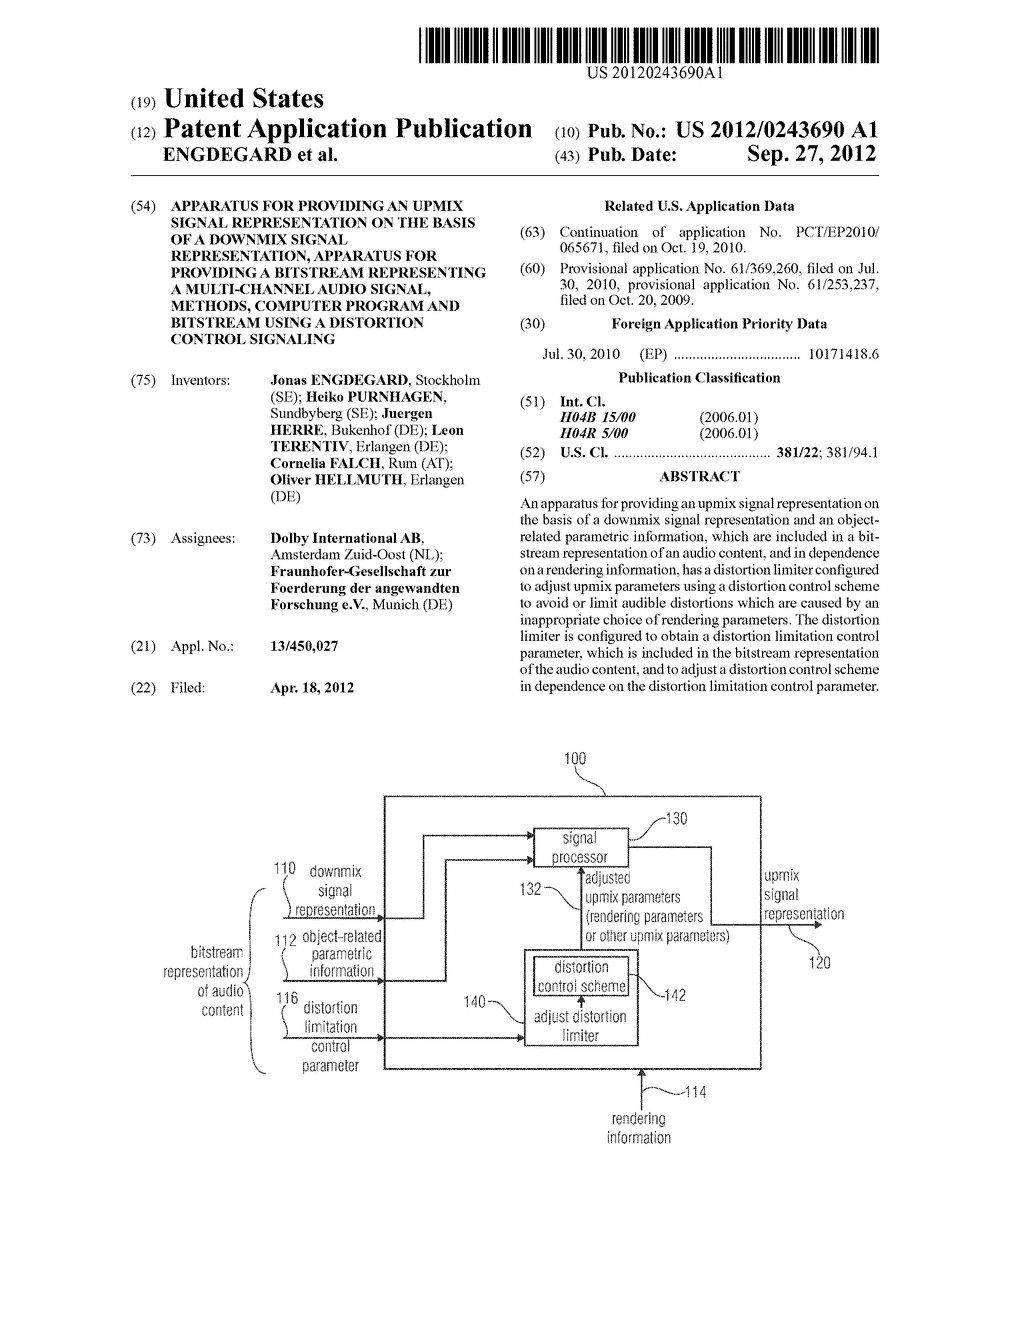 APPARATUS FOR PROVIDING AN UPMIX SIGNAL REPRESENTATION ON THE BASIS OF A     DOWNMIX SIGNAL REPRESENTATION, APPARATUS FOR PROVIDING A BITSTREAM     REPRESENTING A MULTI-CHANNEL AUDIO SIGNAL, METHODS, COMPUTER PROGRAM AND     BITSTREAM USING A DISTORTION CONTROL SIGNALING - diagram, schematic, and image 01